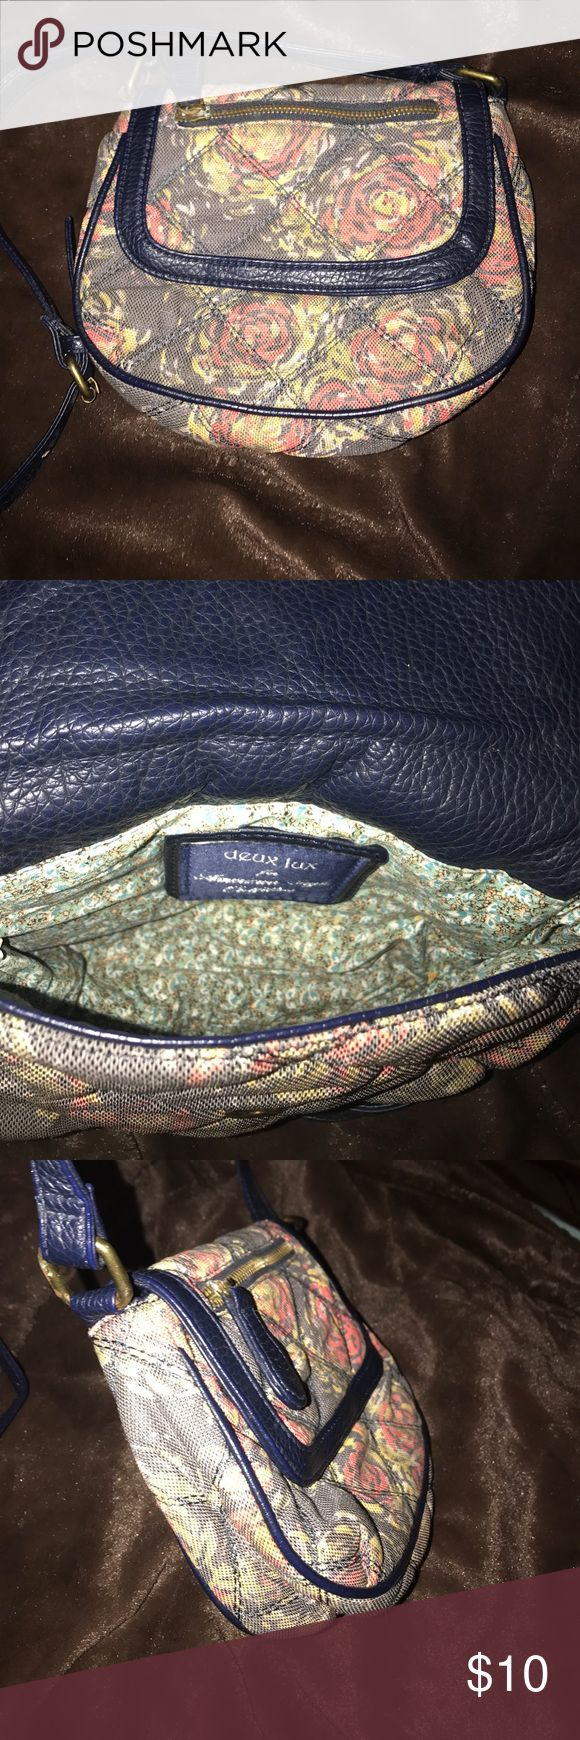 duex lux American Eagle Outfiters cross-body purse floral cross body purse trying to get rid of, super cute and vintage just not my style anymore American Eagle Outfitters Bags Crossbody Bags